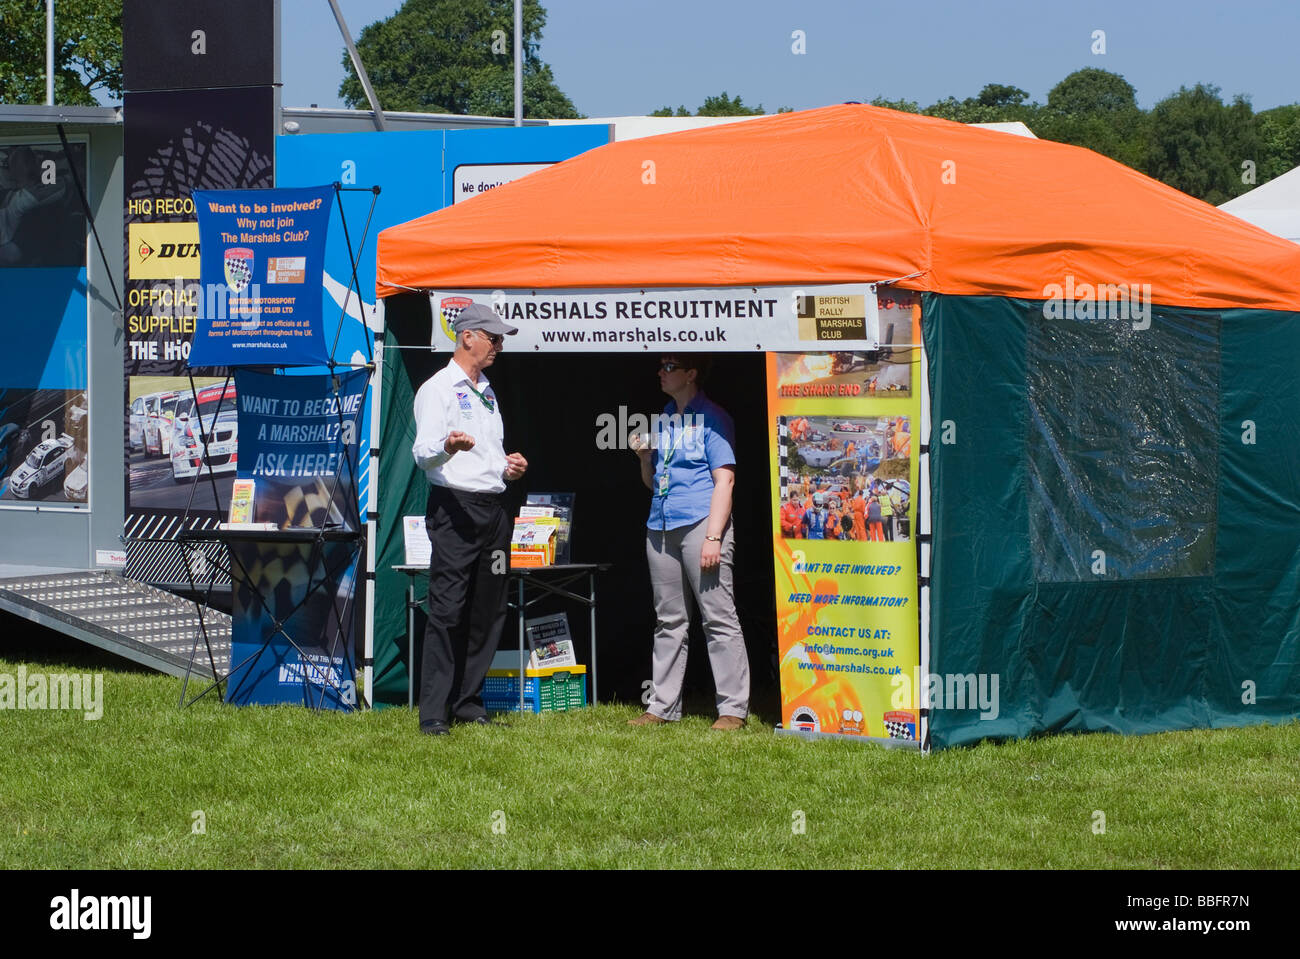 Motorsport Marshal Recruitment Small Marquee at Oulton Park Motor Racing Circuit Cheshire England Stock Photo